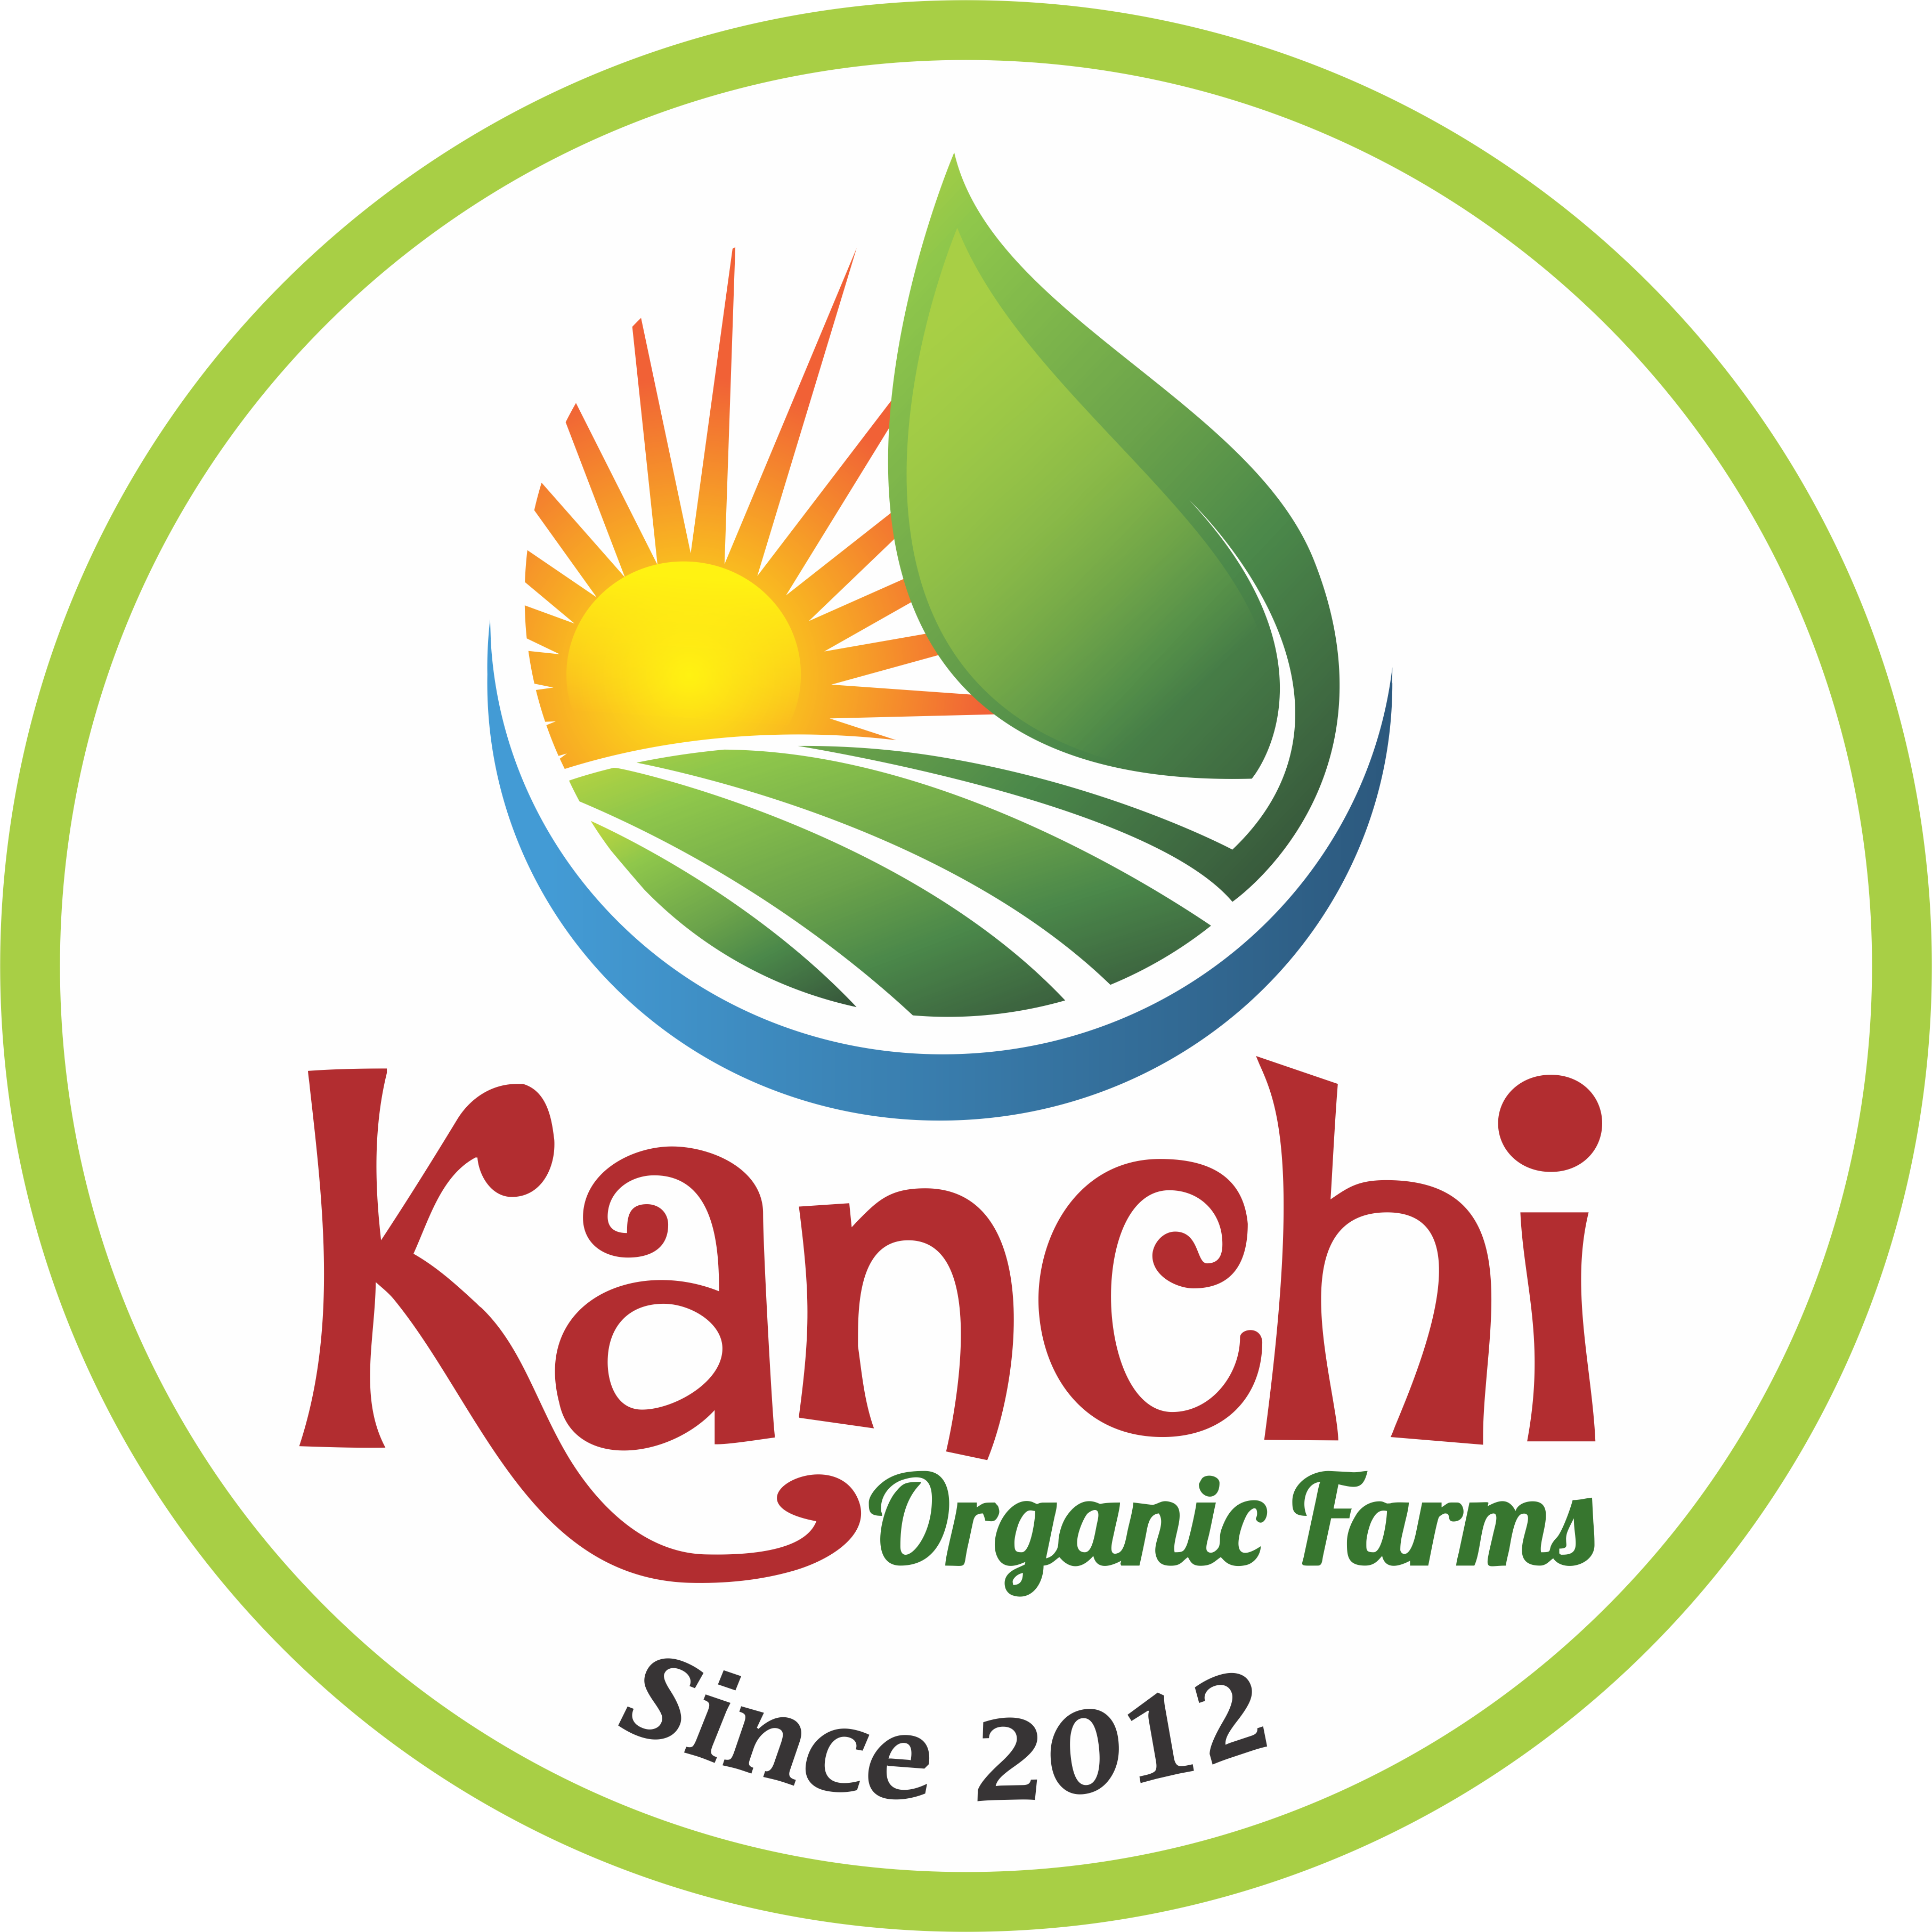 Kanchi Organic Farms